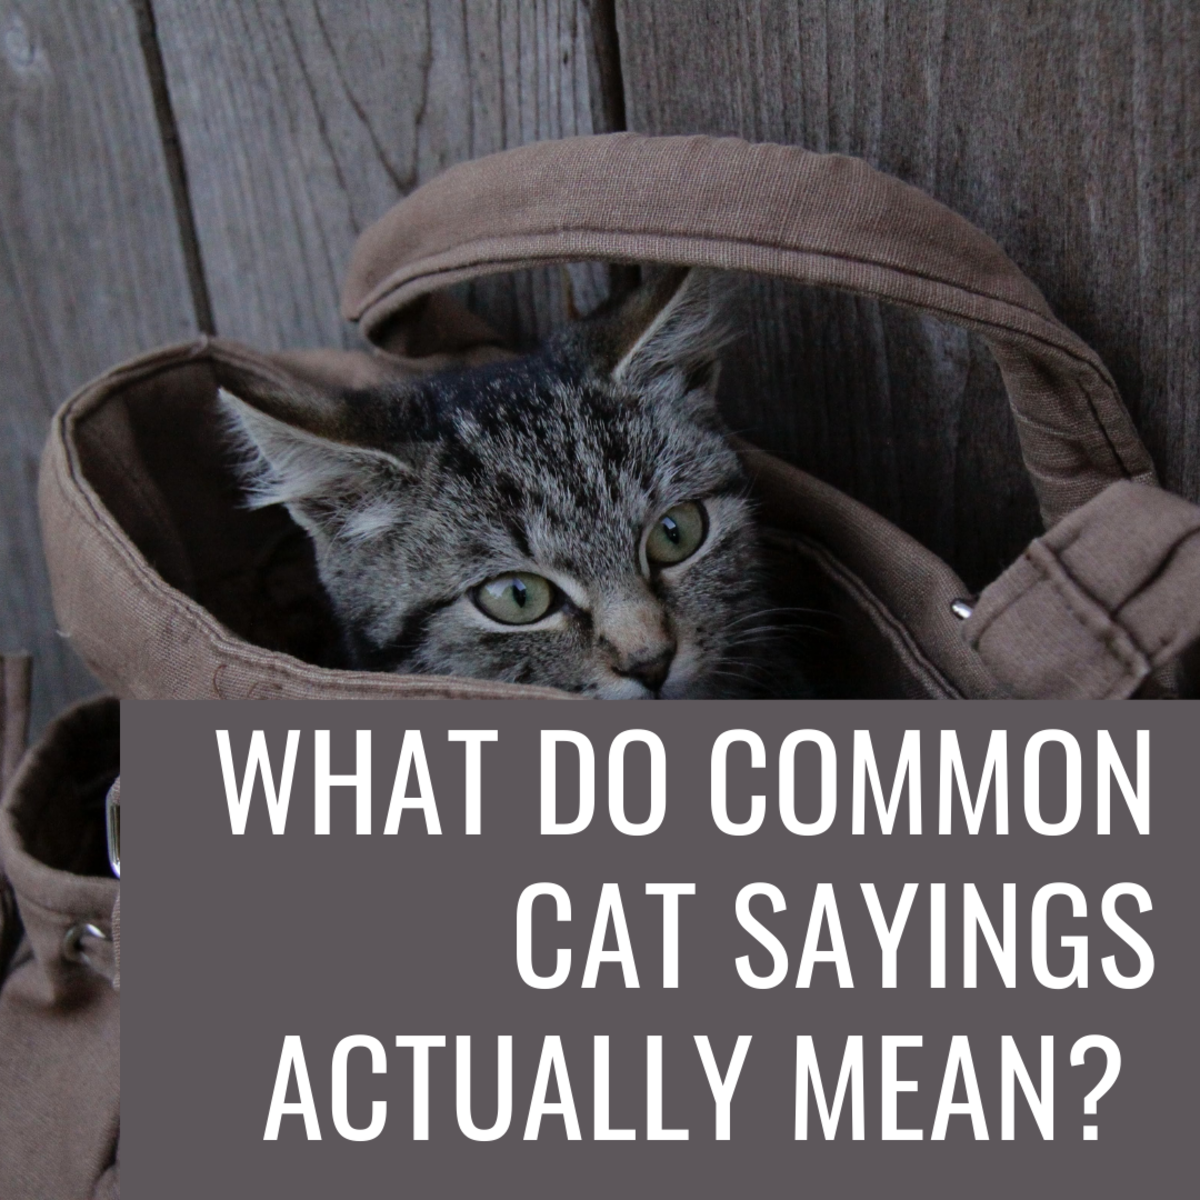 Cats come up in our day-to-day language! But what do all of these sayings actually mean?